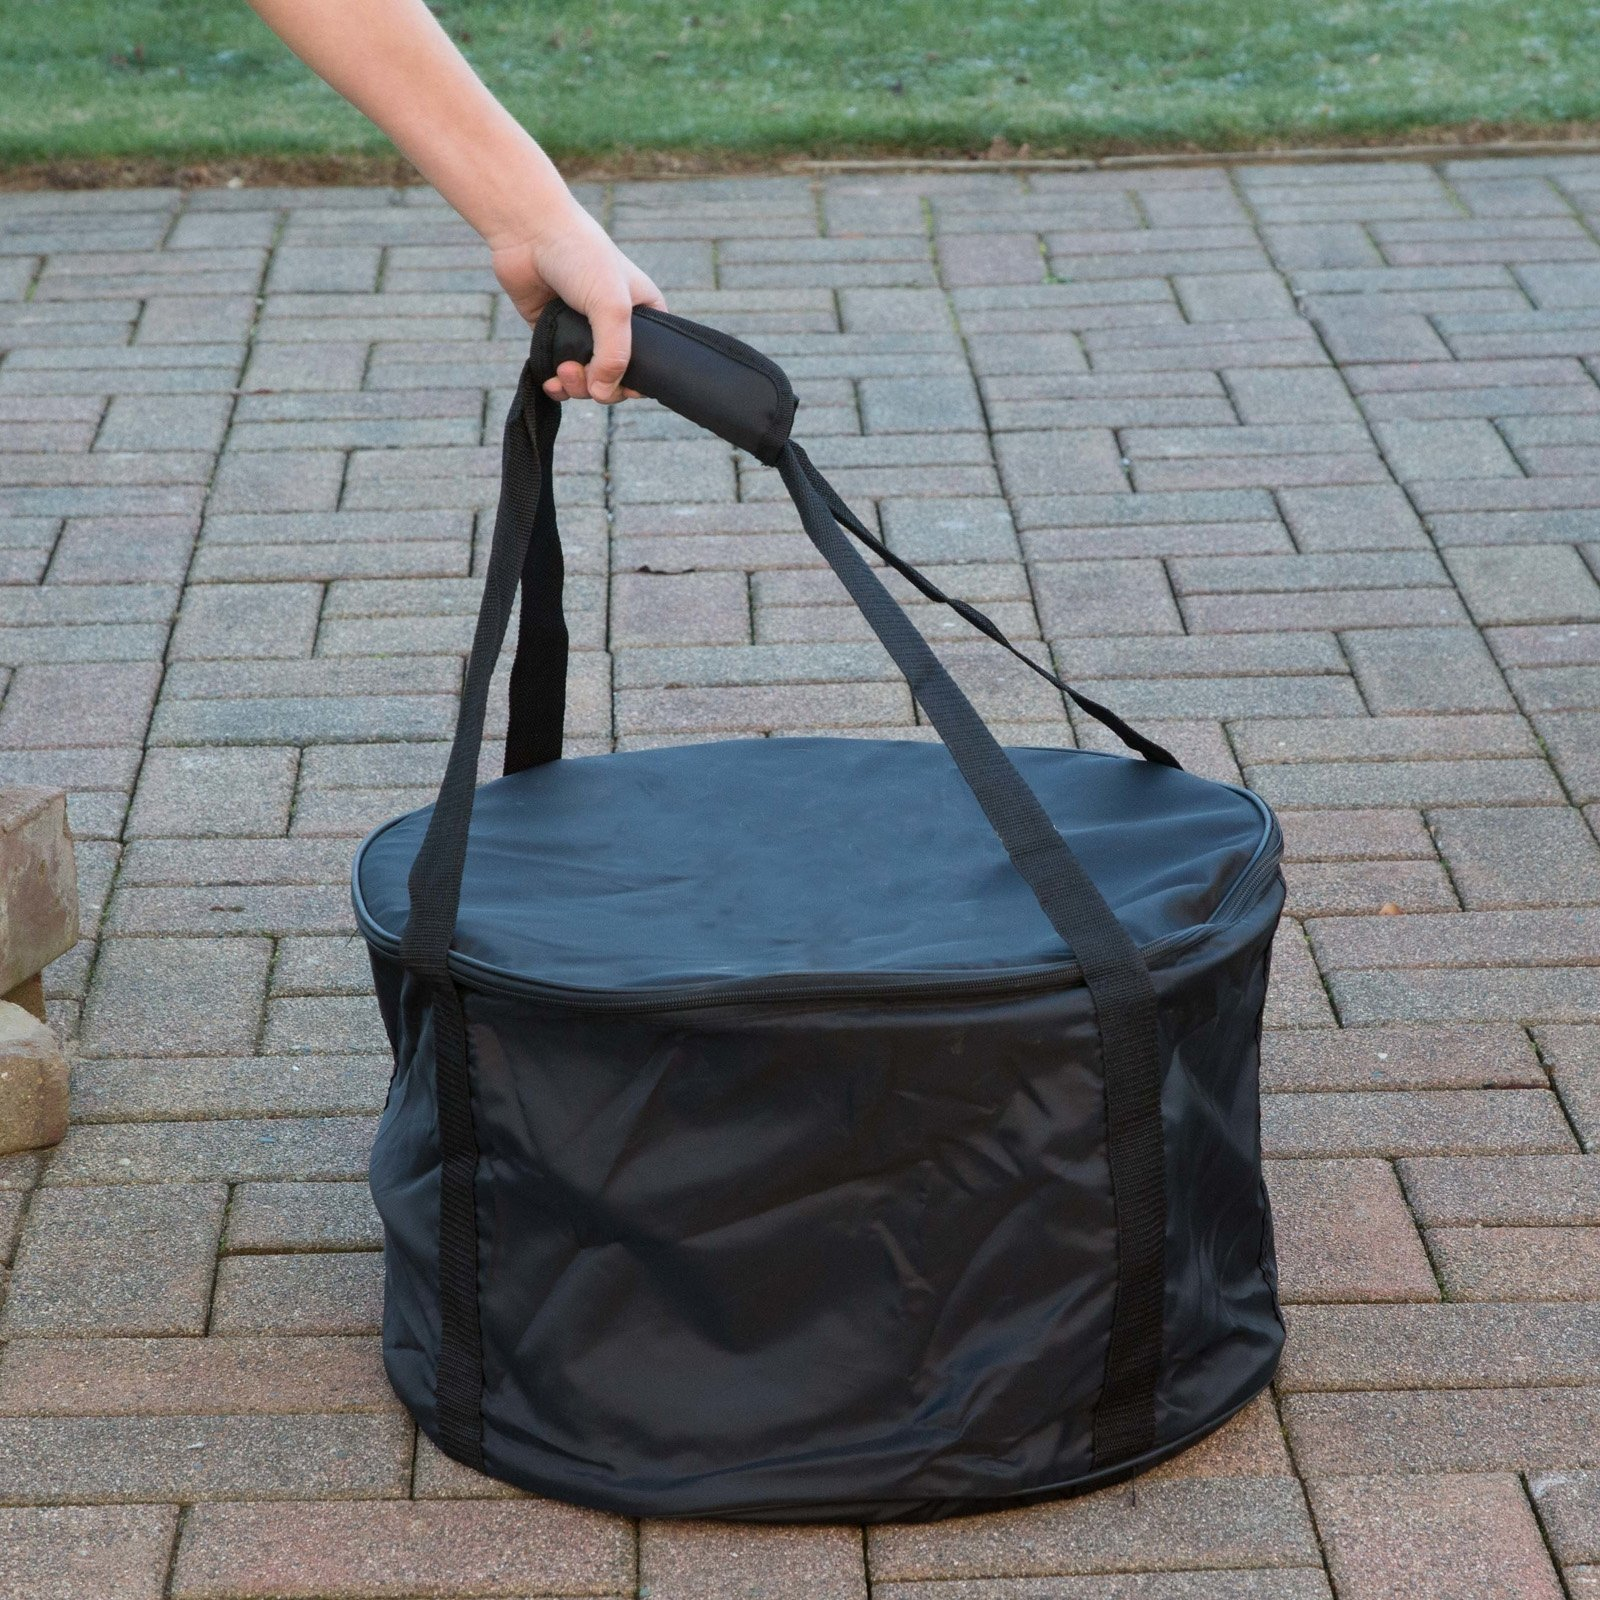 Heininger Destination Gear Carry Bag for Portable Fire Pit and Propane Tank Hose